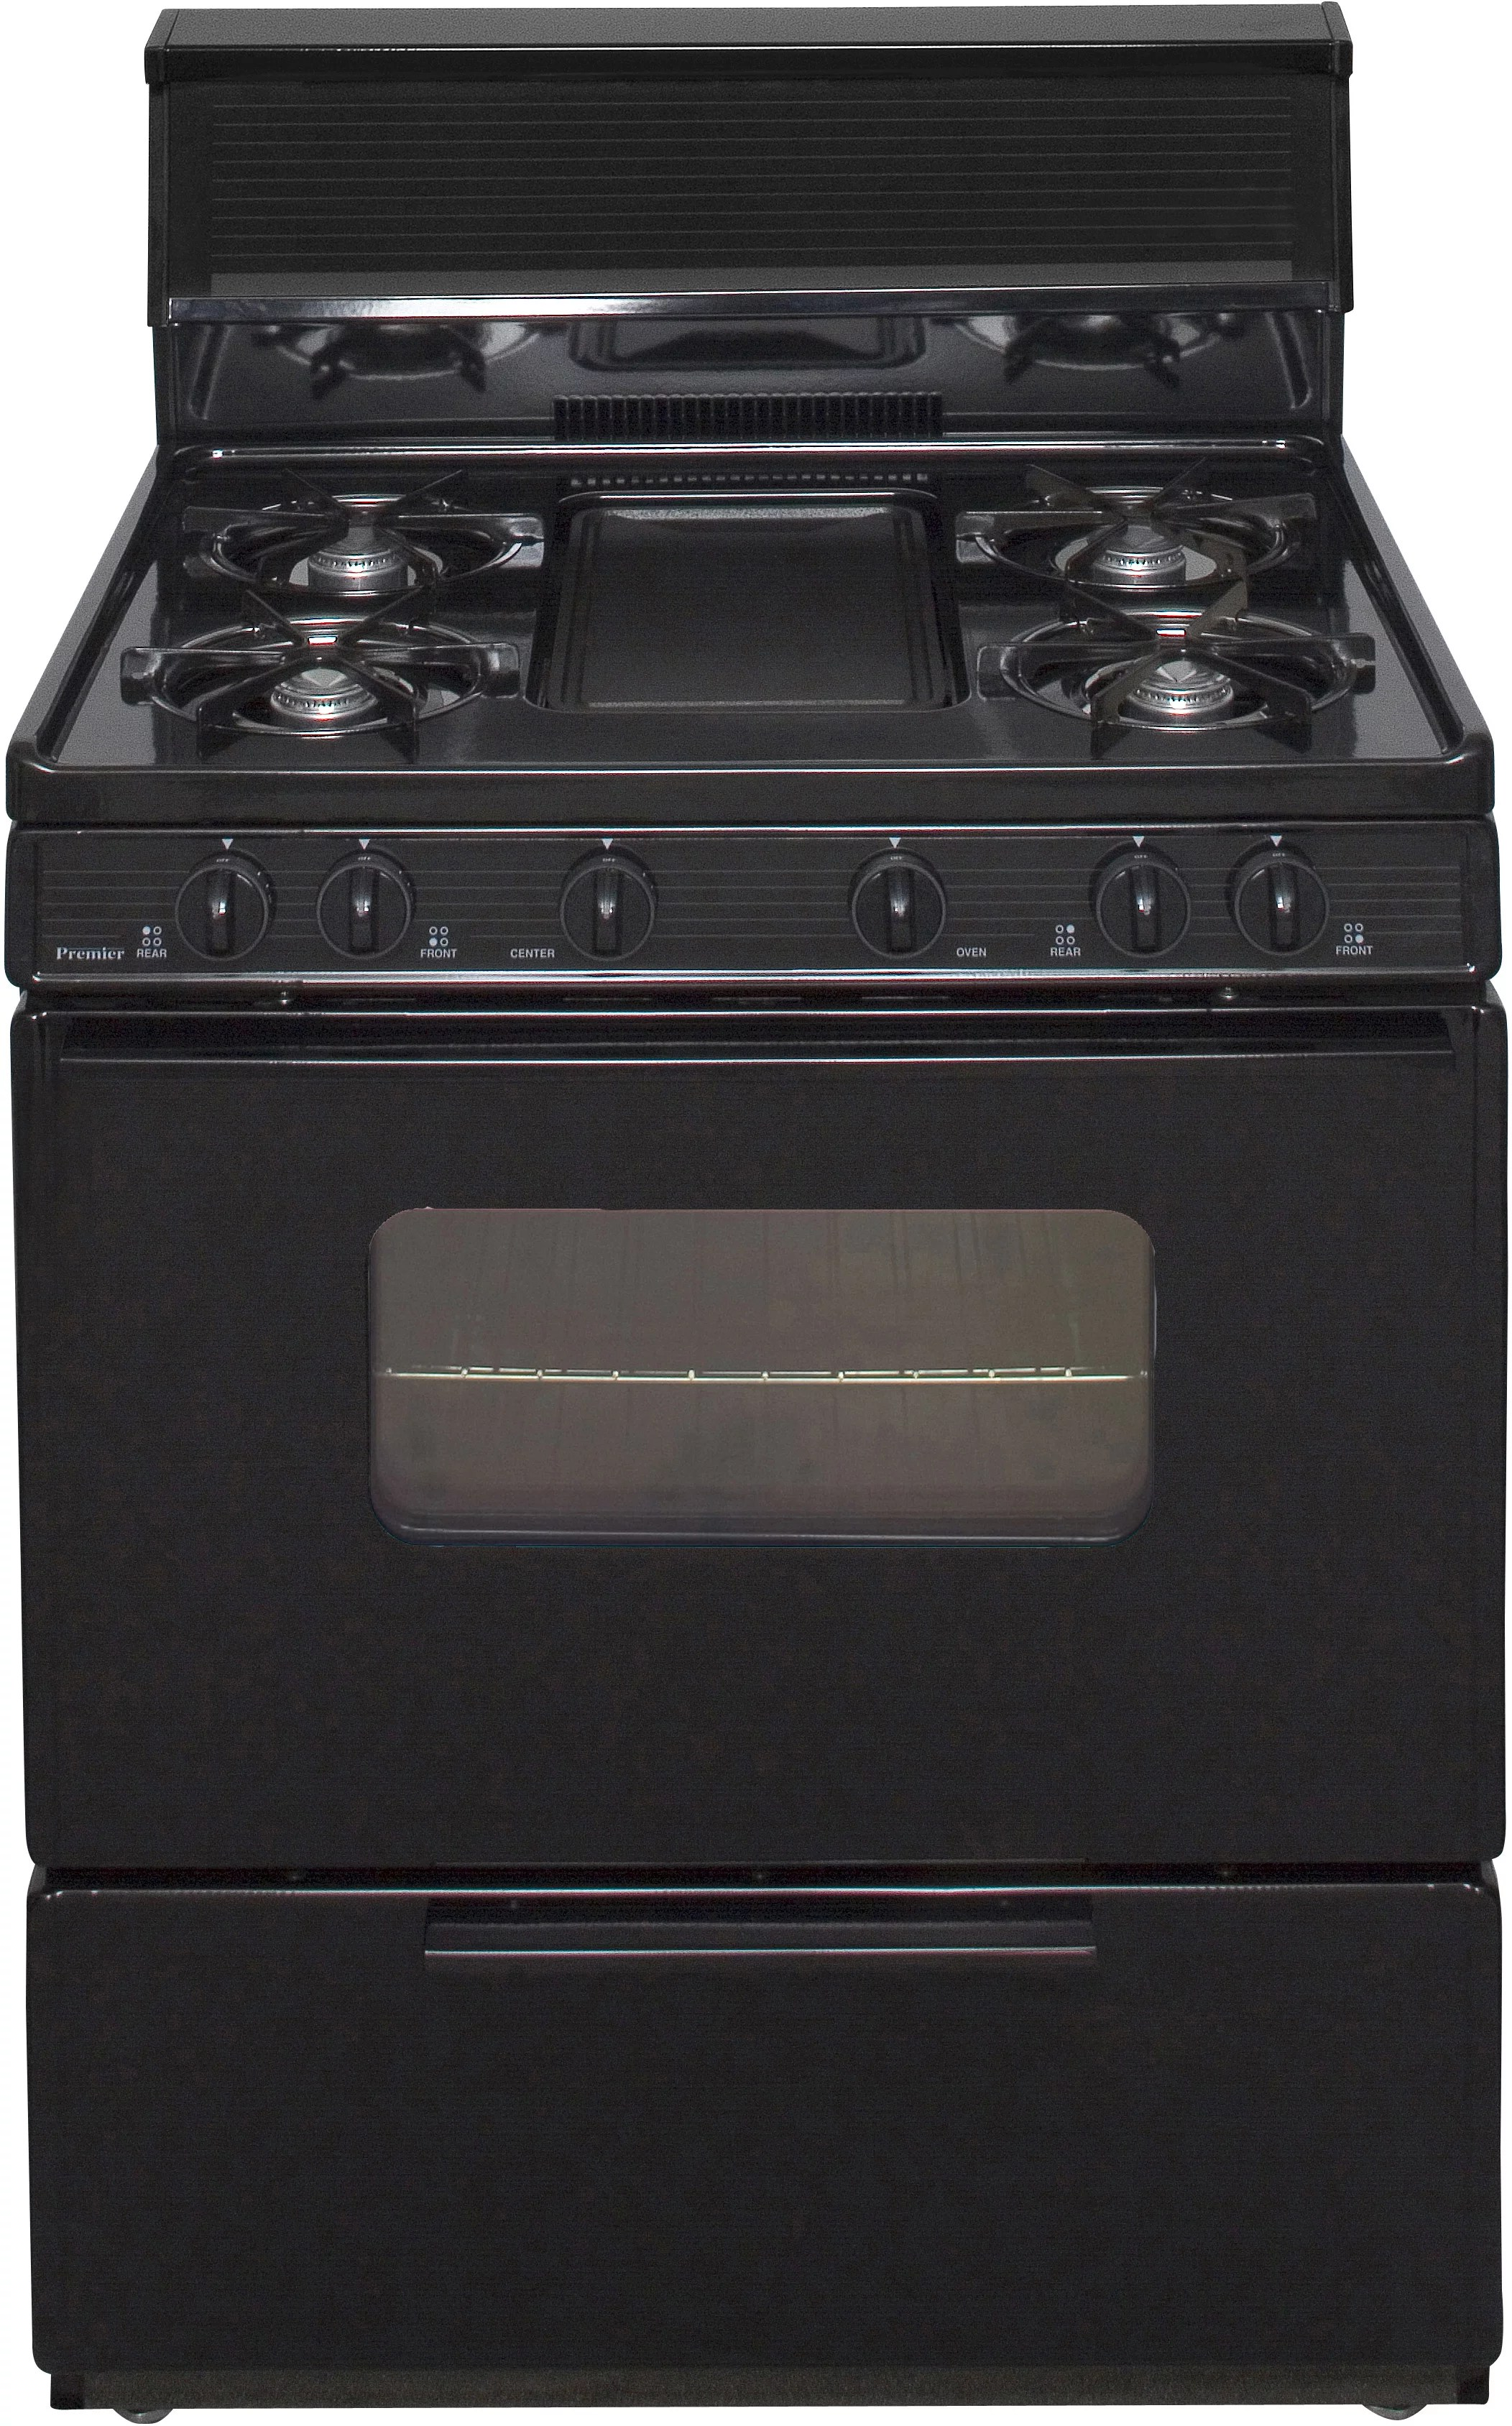 Gas Countertop Stoves Premier Bfk5s9bp 30 Inch Freestanding Gas Range With 5